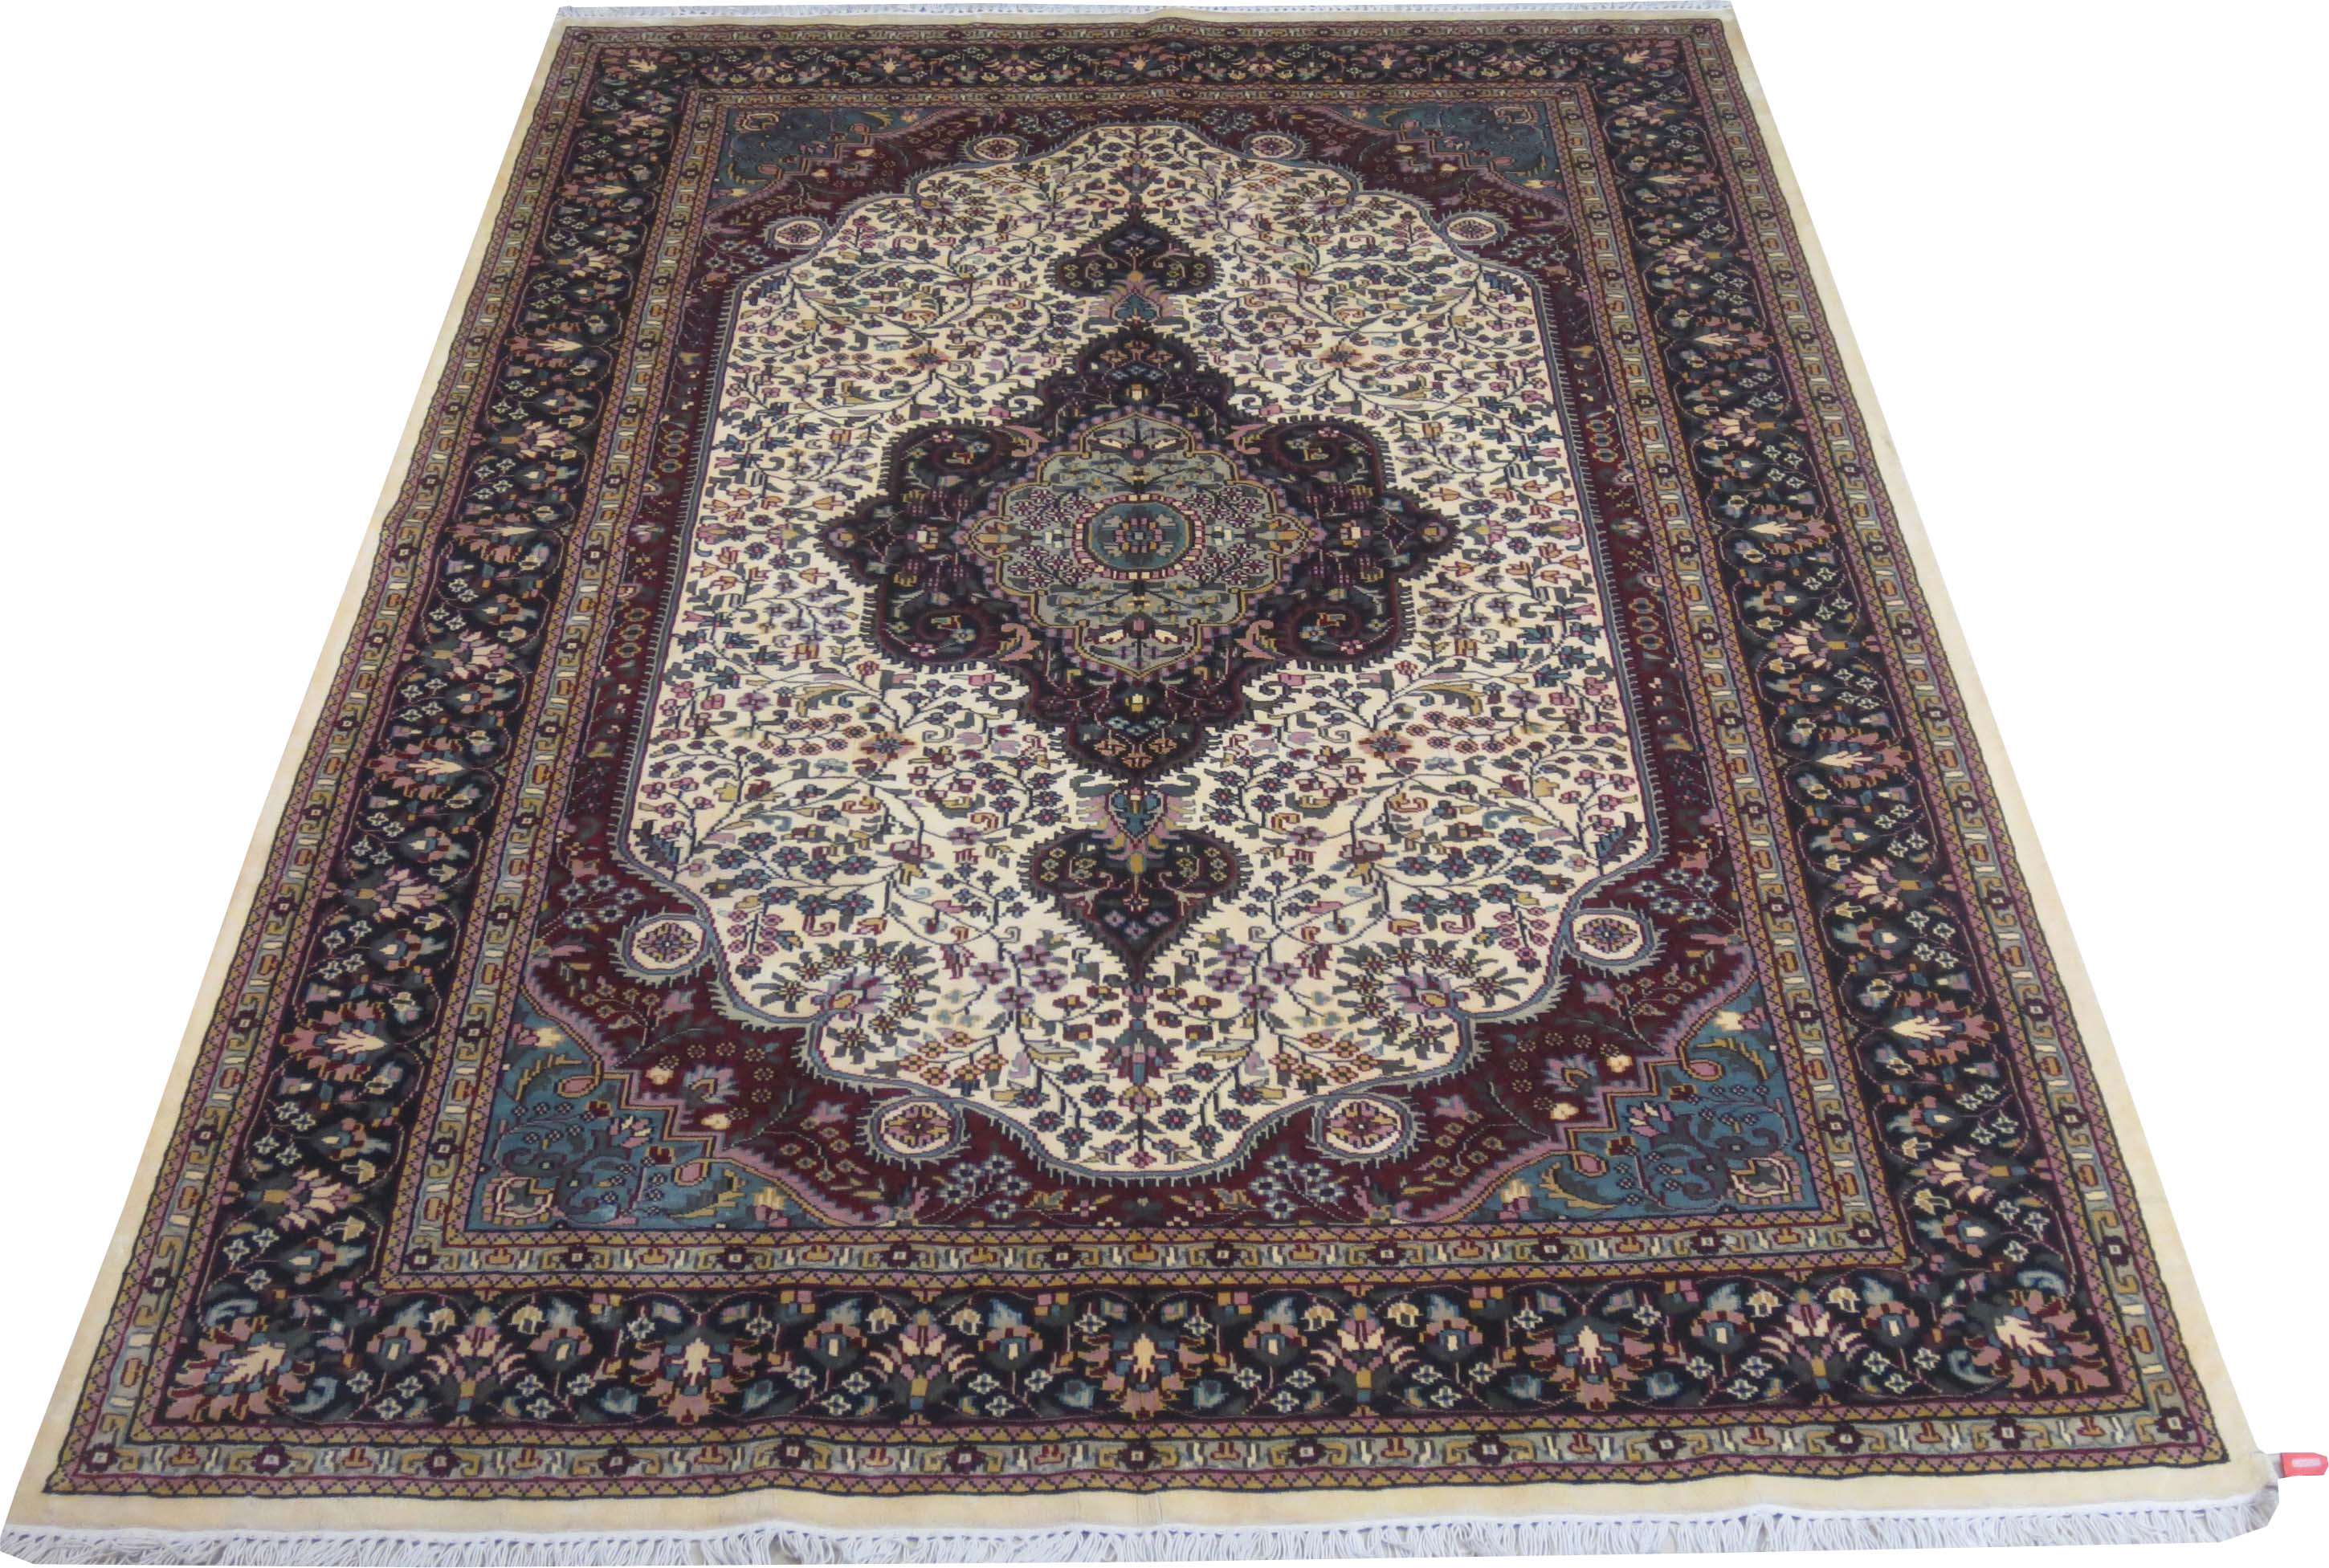 Ivory 6x9 Area Rugs Sale Silk Kashmir Cheap Rugs For Sale